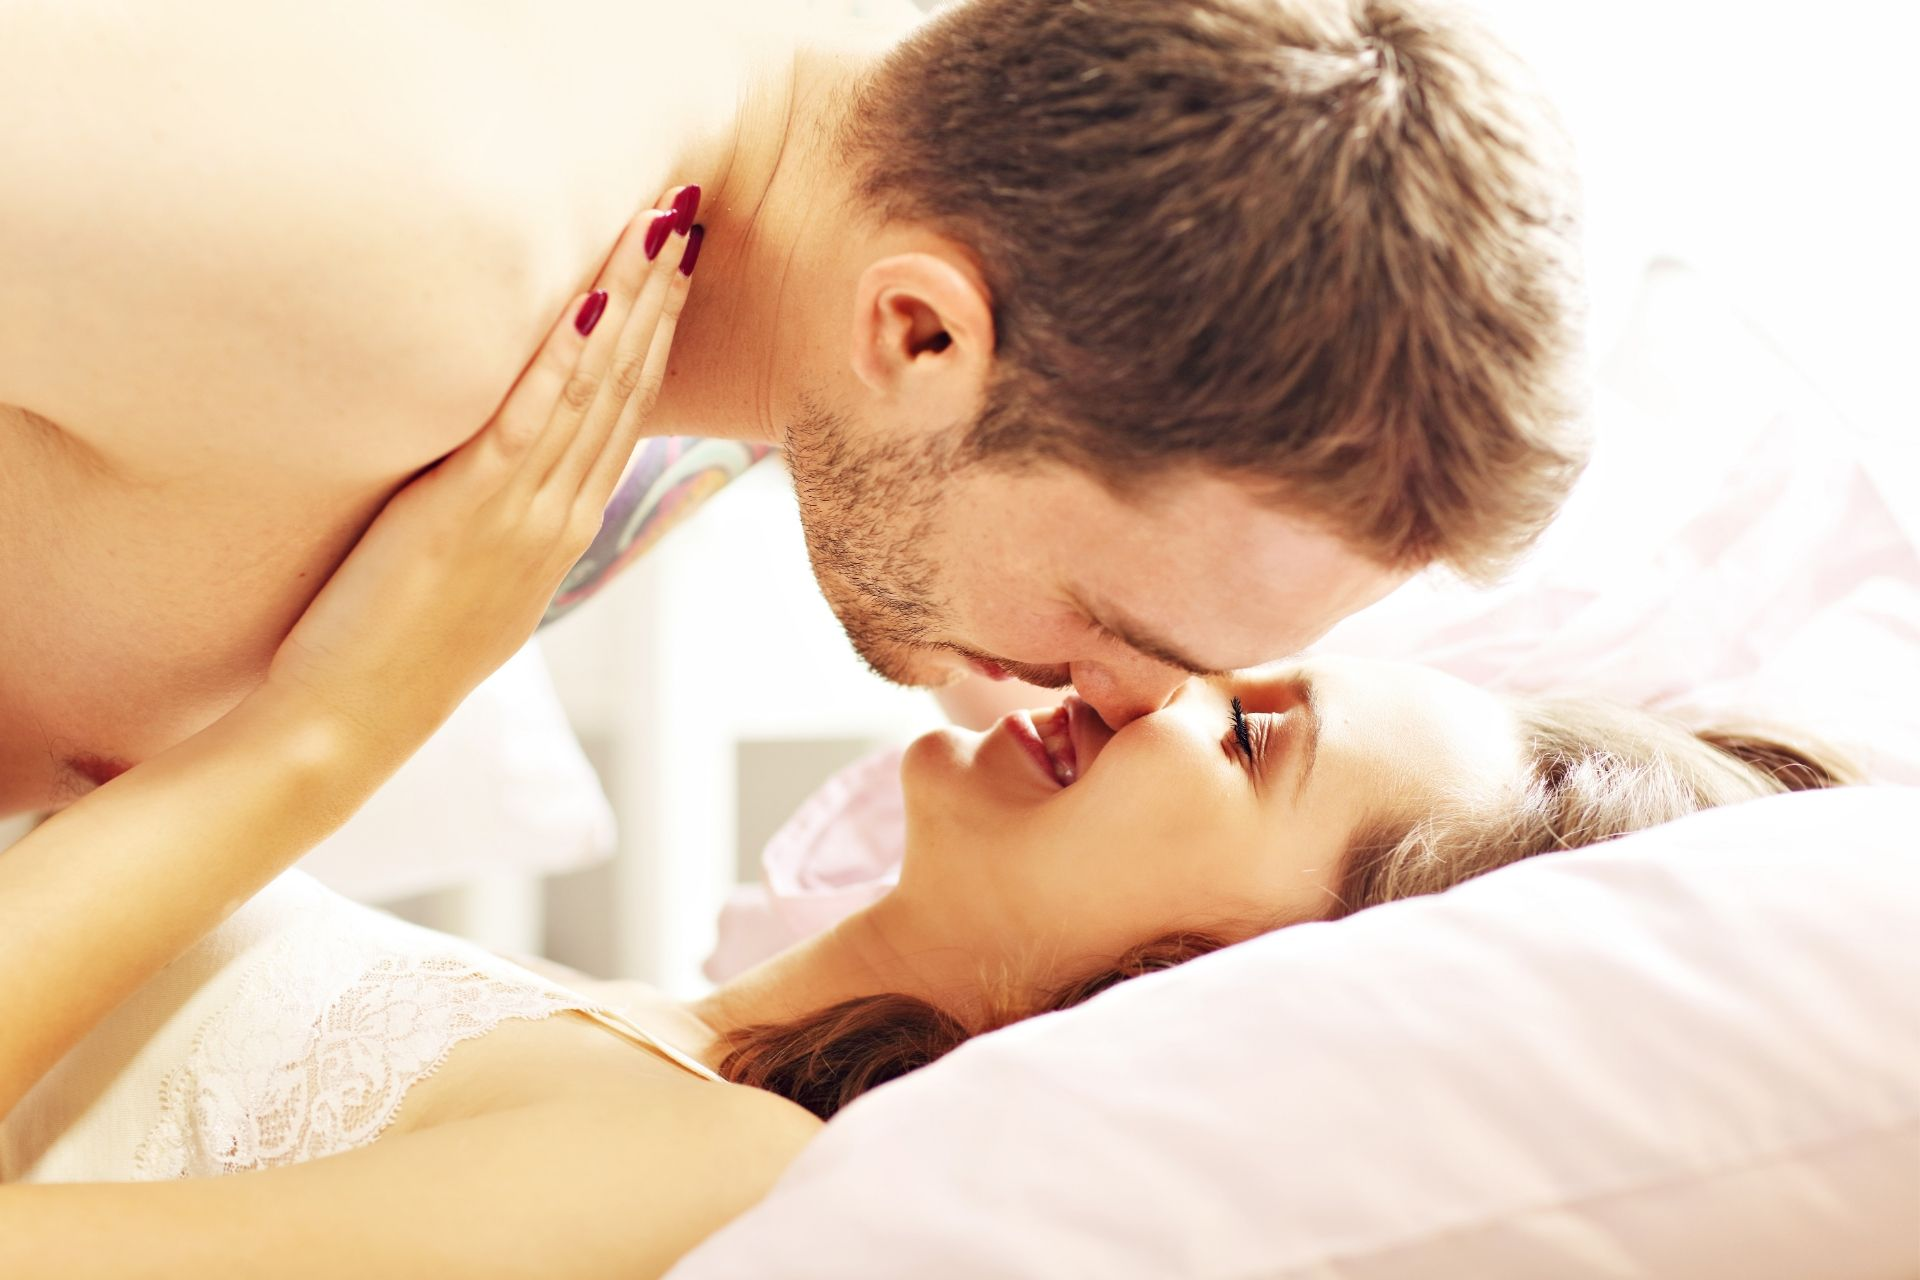 New things to try in bed with your boyfriend